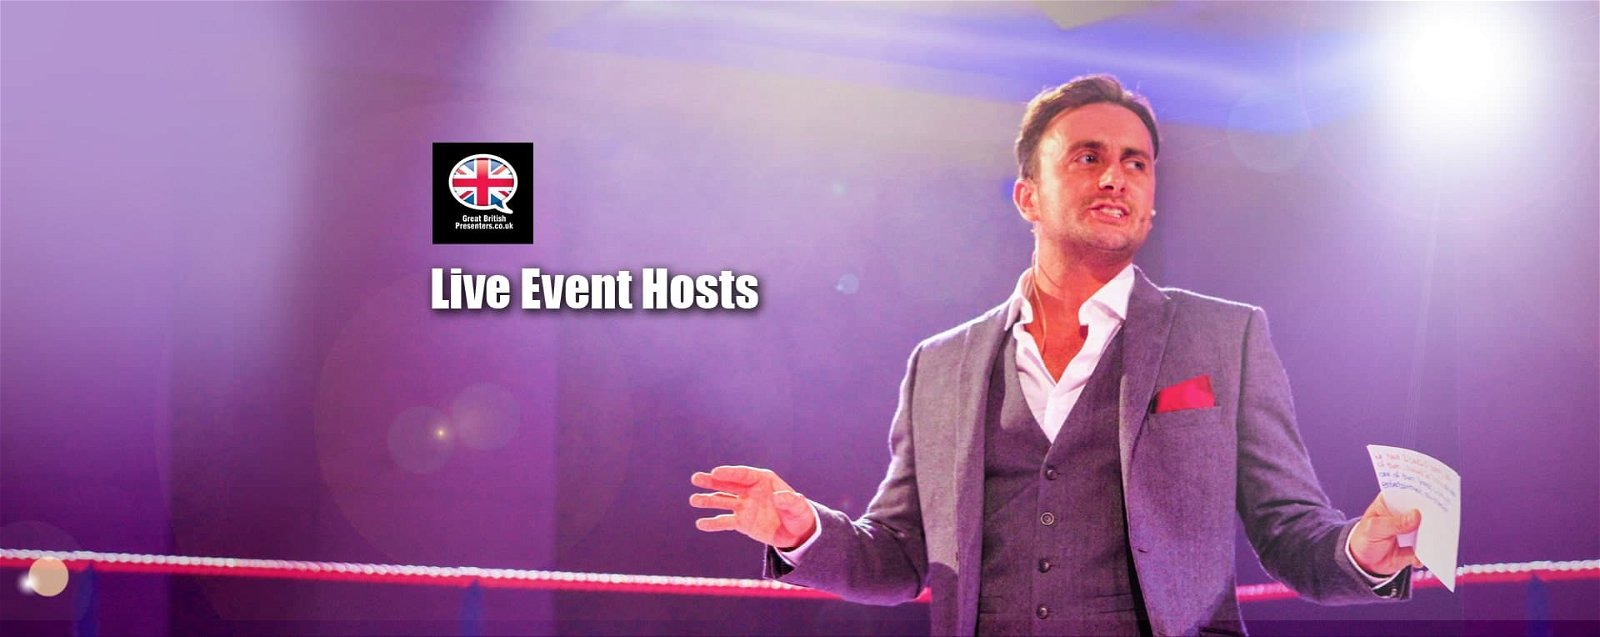 Corporate Live special Event Hosts party entertainers at Great British Presenters-min